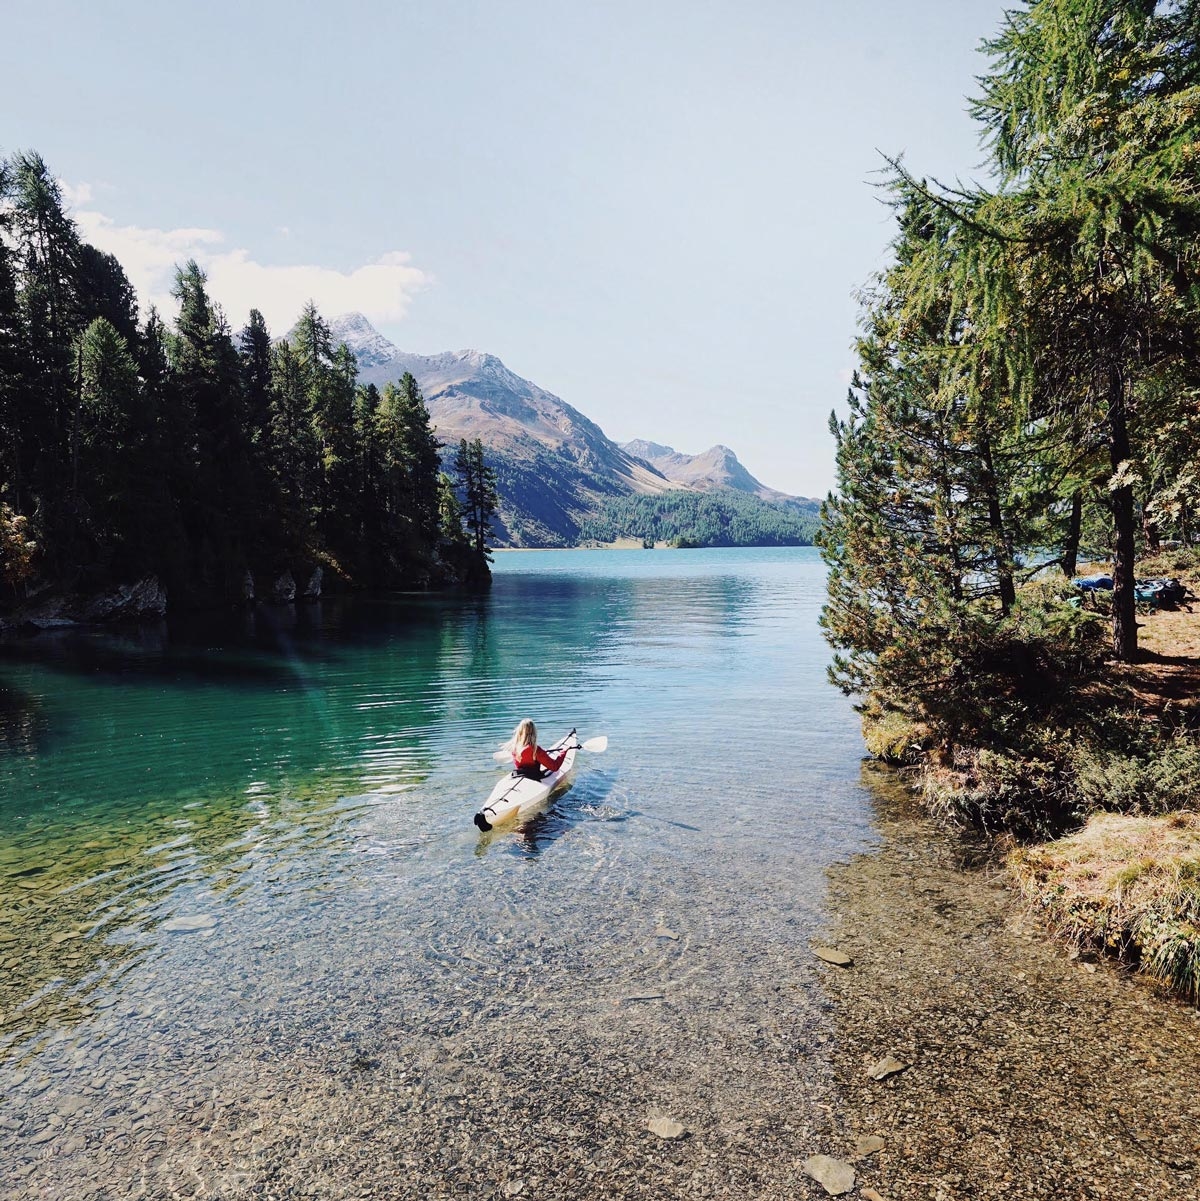 Photo by Martina Bisaz of woman kayaking in alpine lake